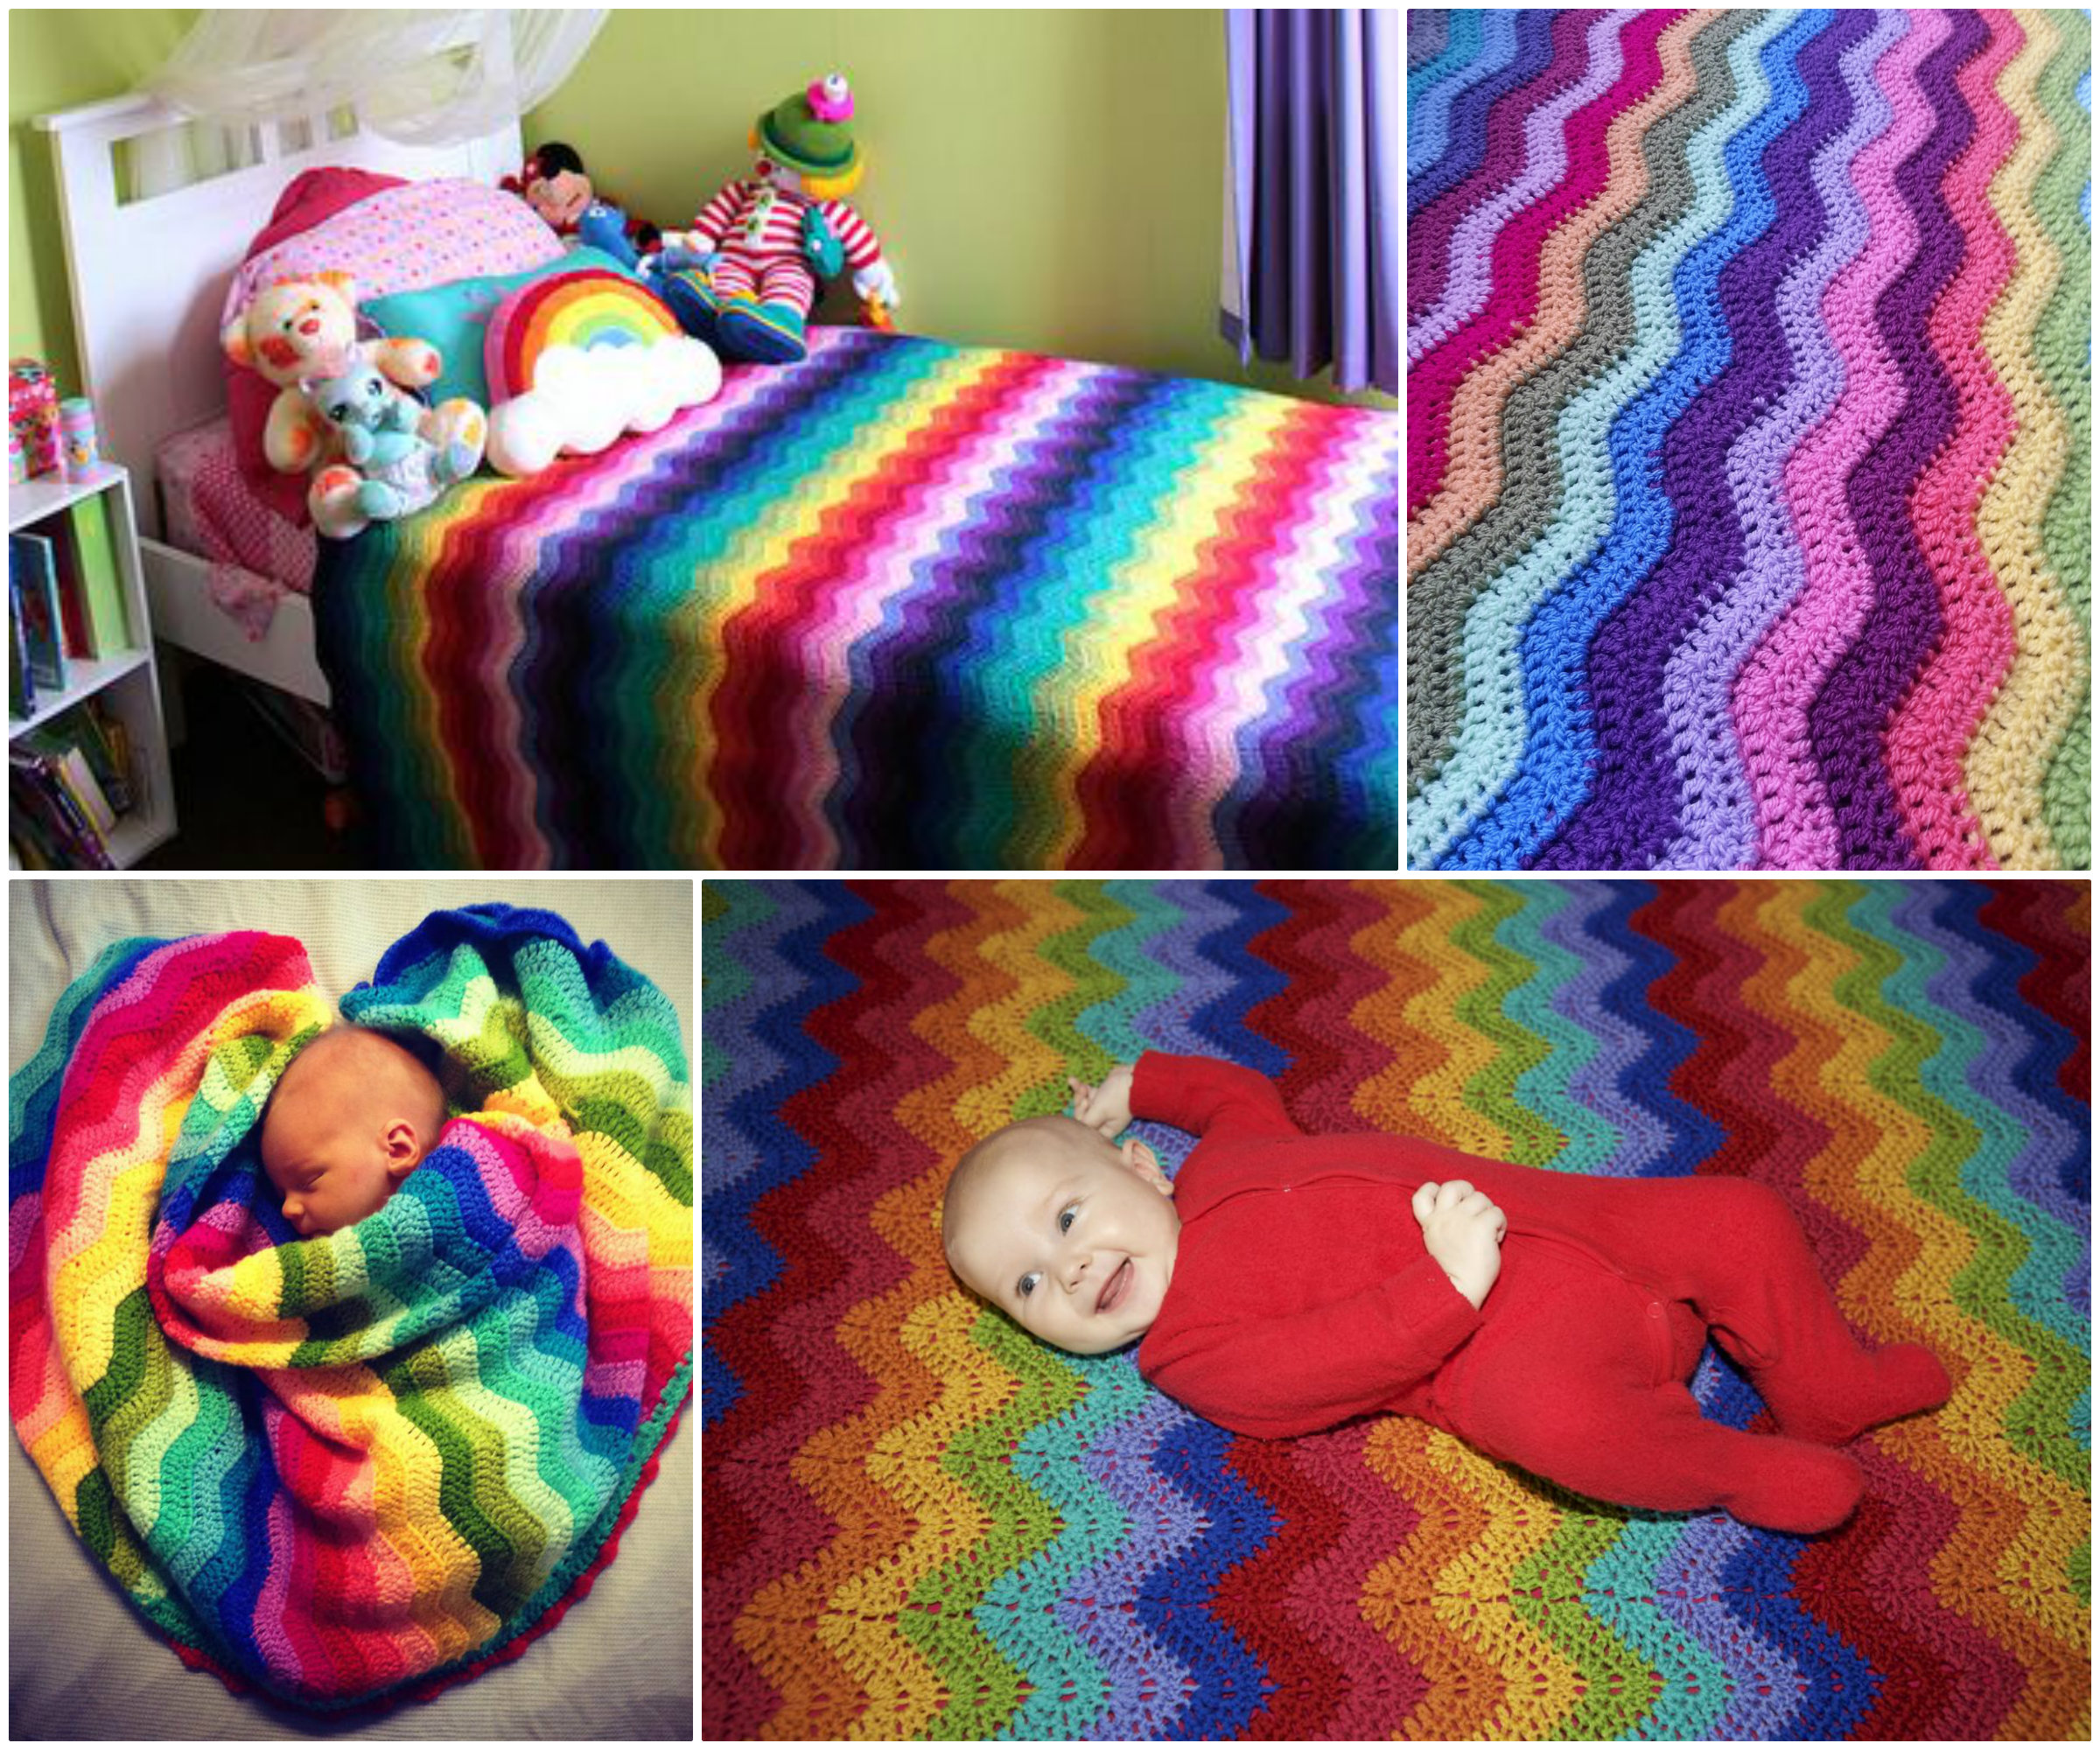 Rainbow Ripple Blanket free pattern diy F Beautifully Colorful Rainbow Ripple Blanket   Free Pattern and Guide